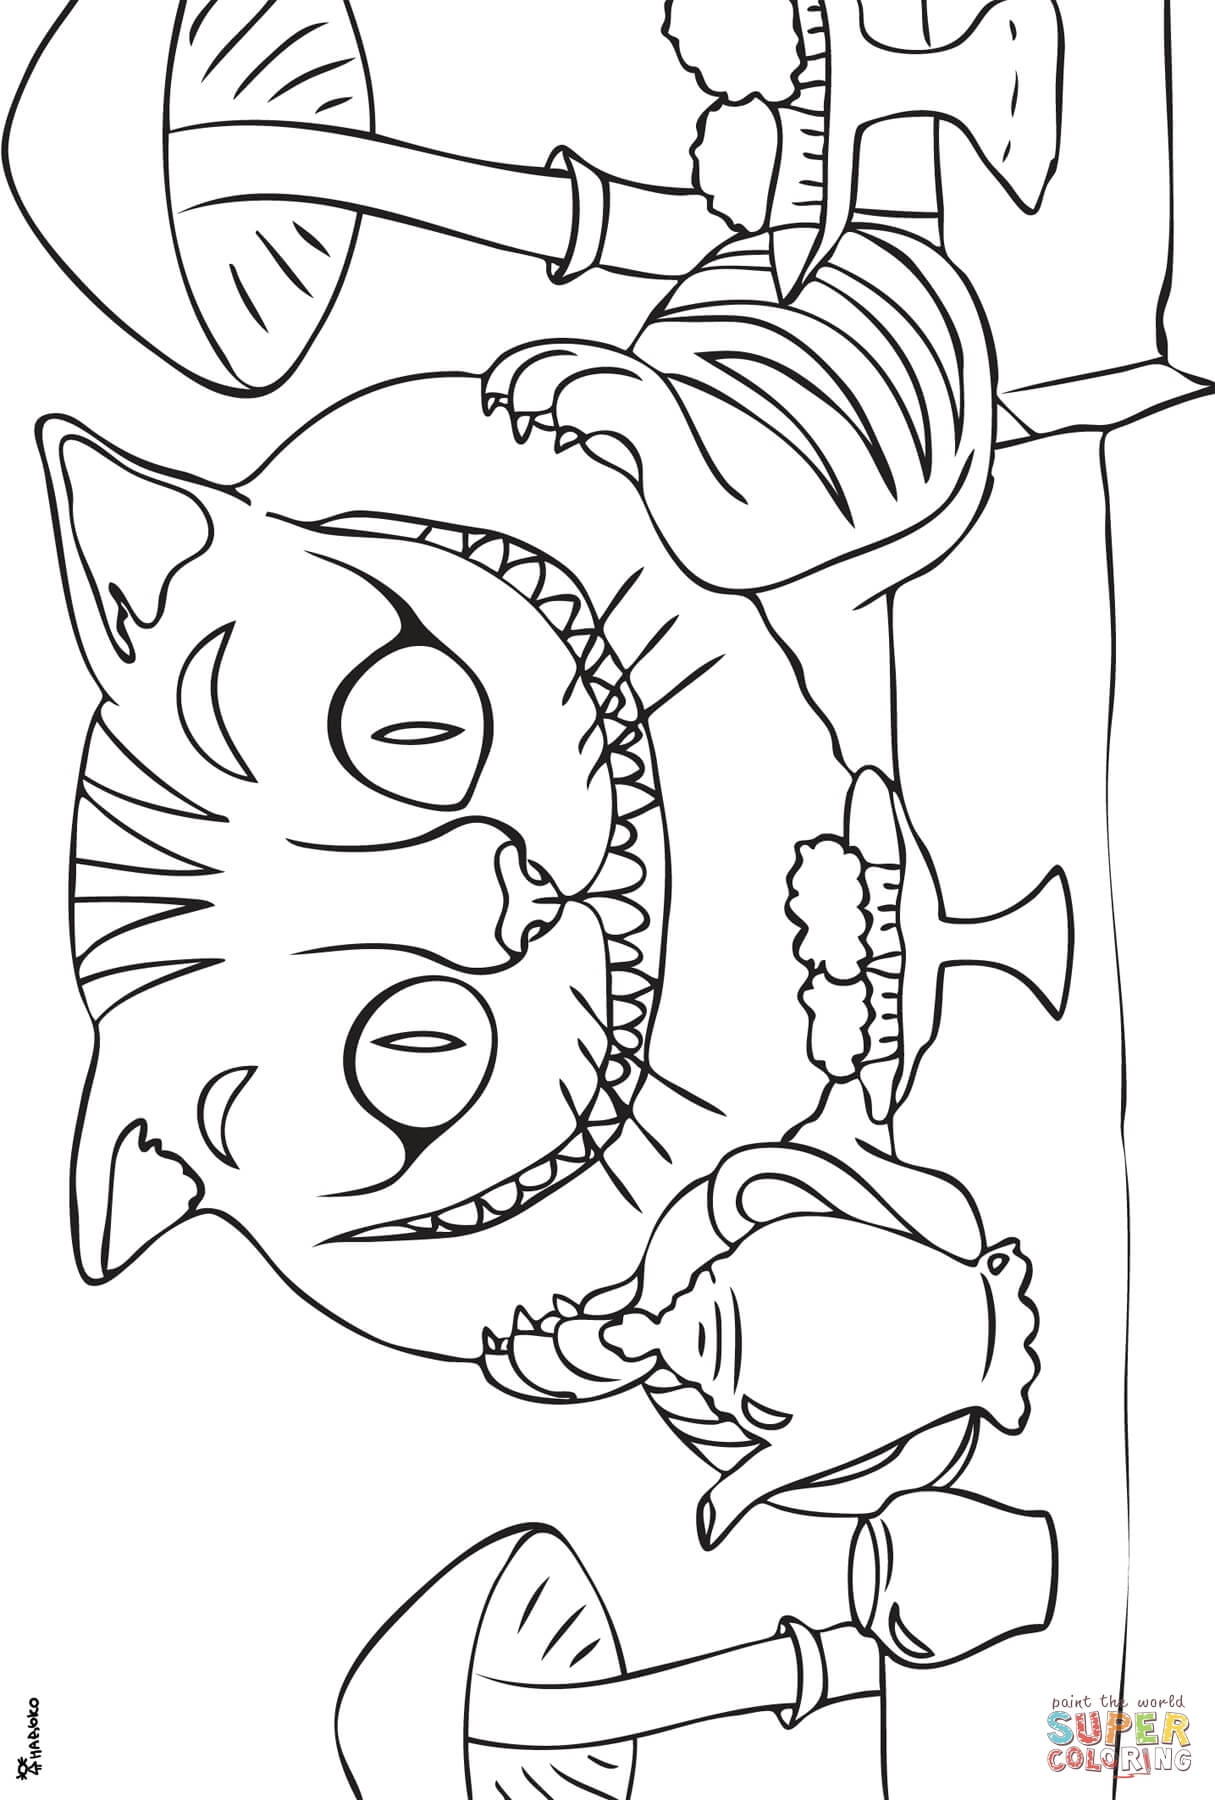 Cheshire Cat Coloring Page Free Printable Coloring Pages